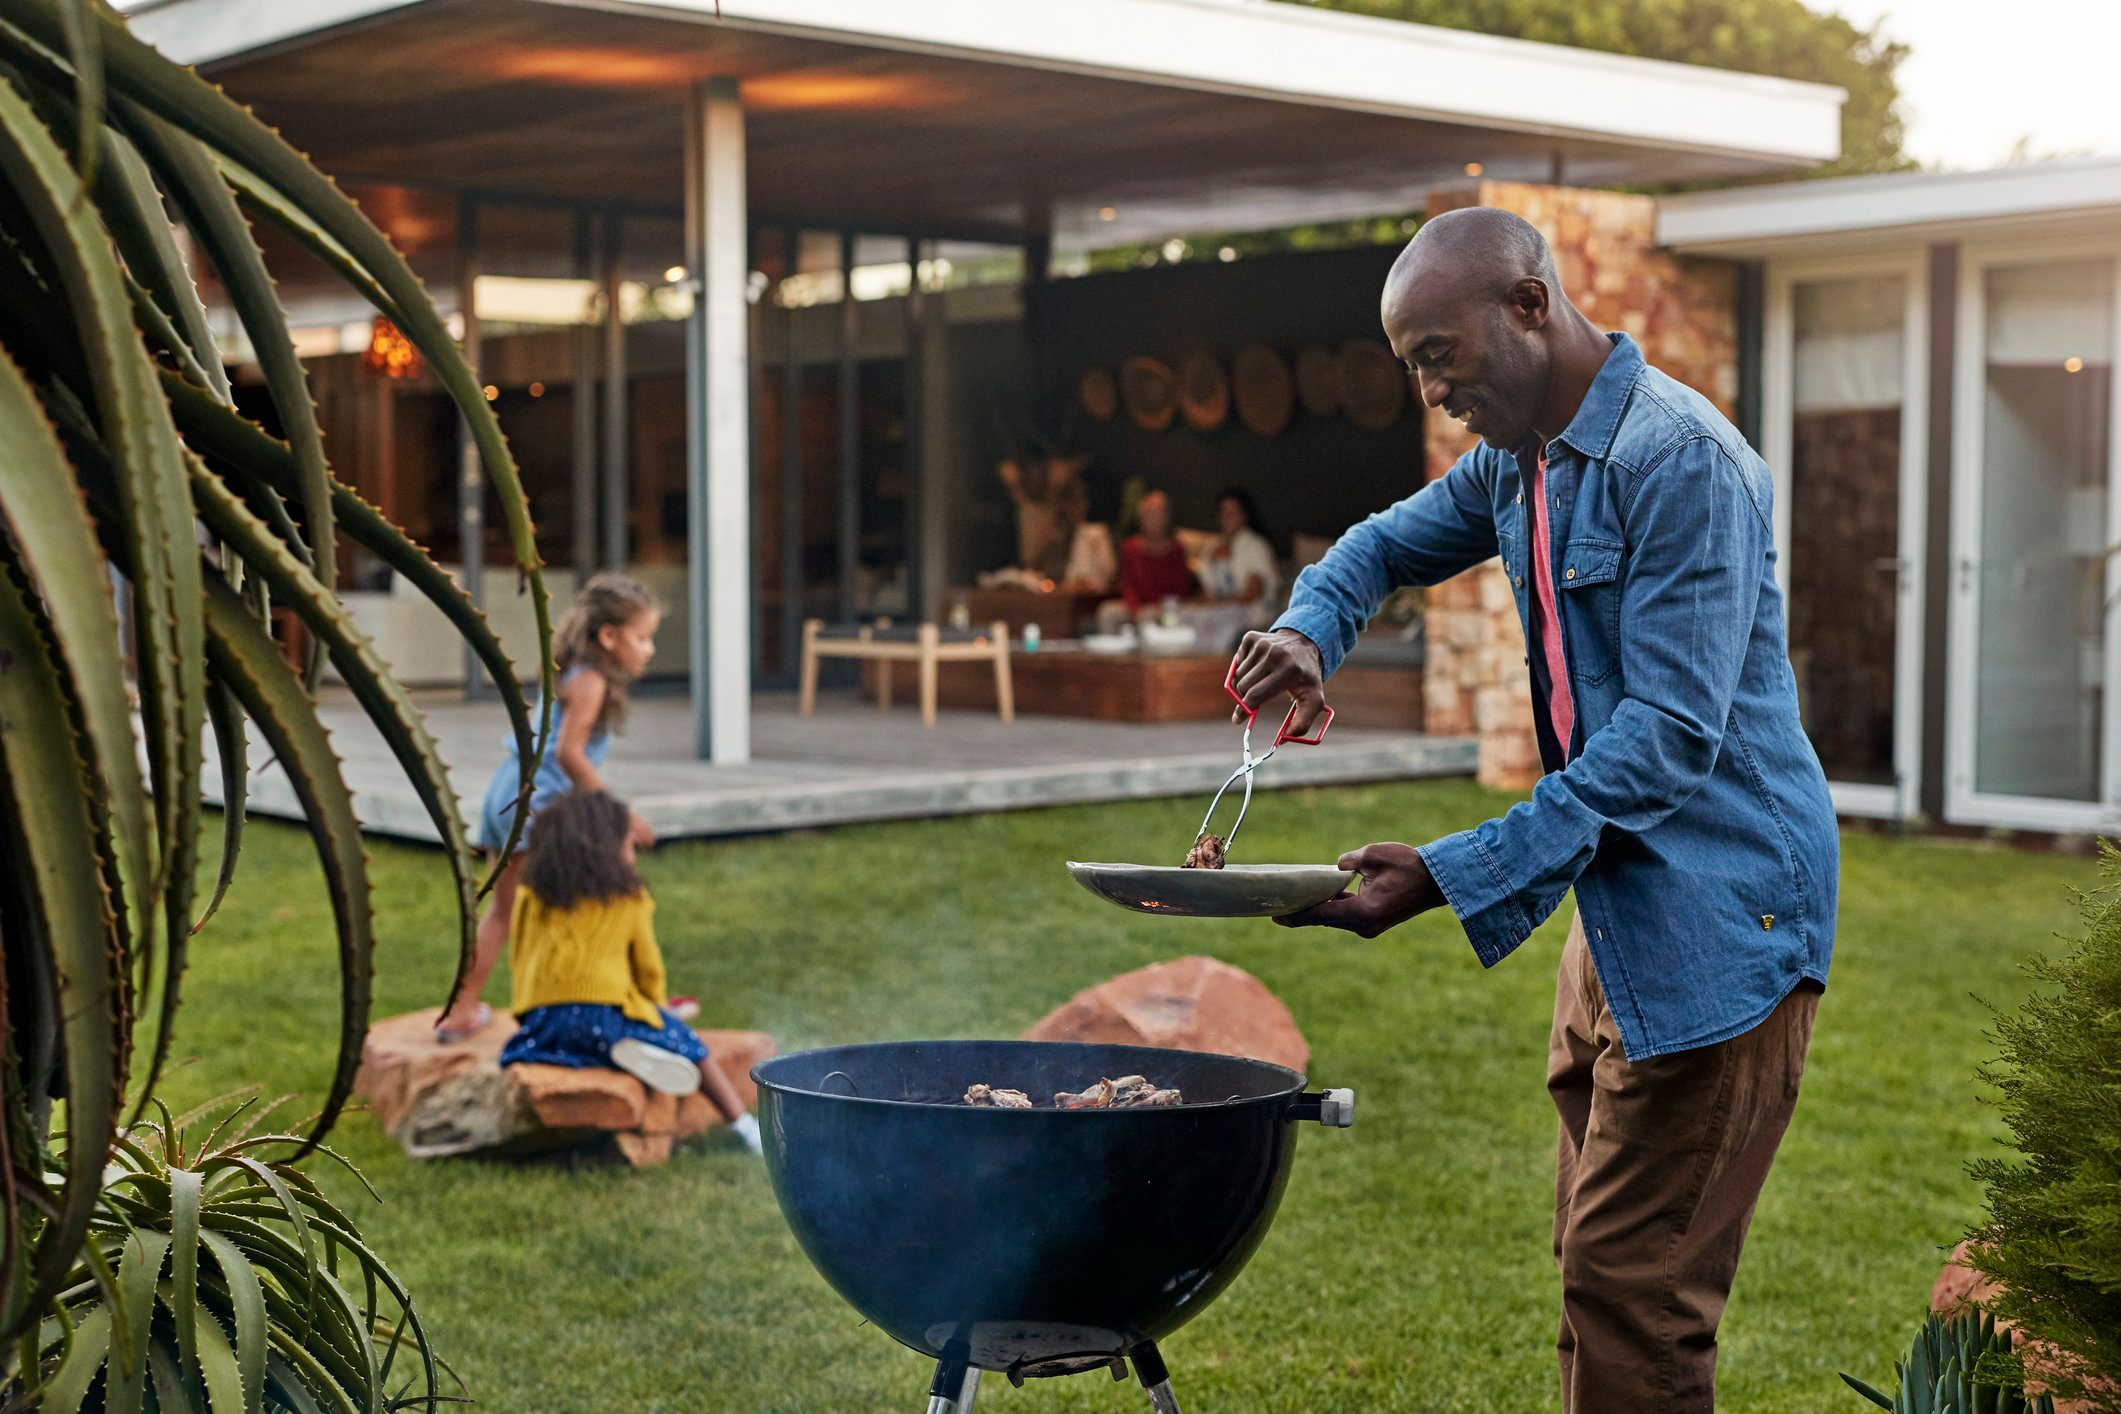 healthier grilling   man grilling in his backyard with family